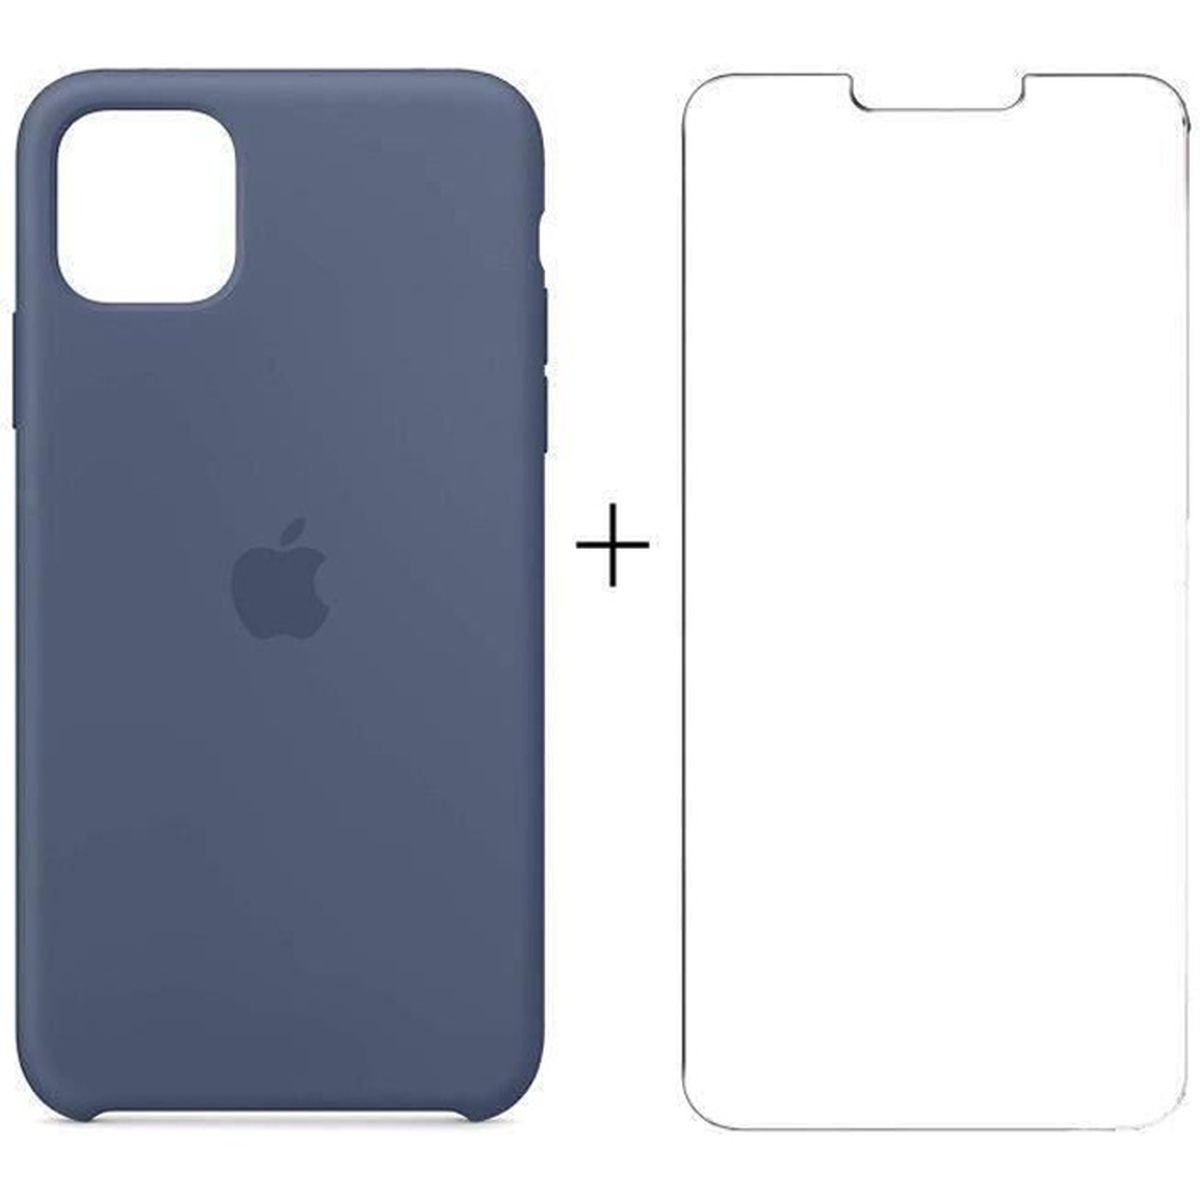 "COQUE - BUMPER Coque iPhone 11 6.1"" Film de Screen Protector Hous"